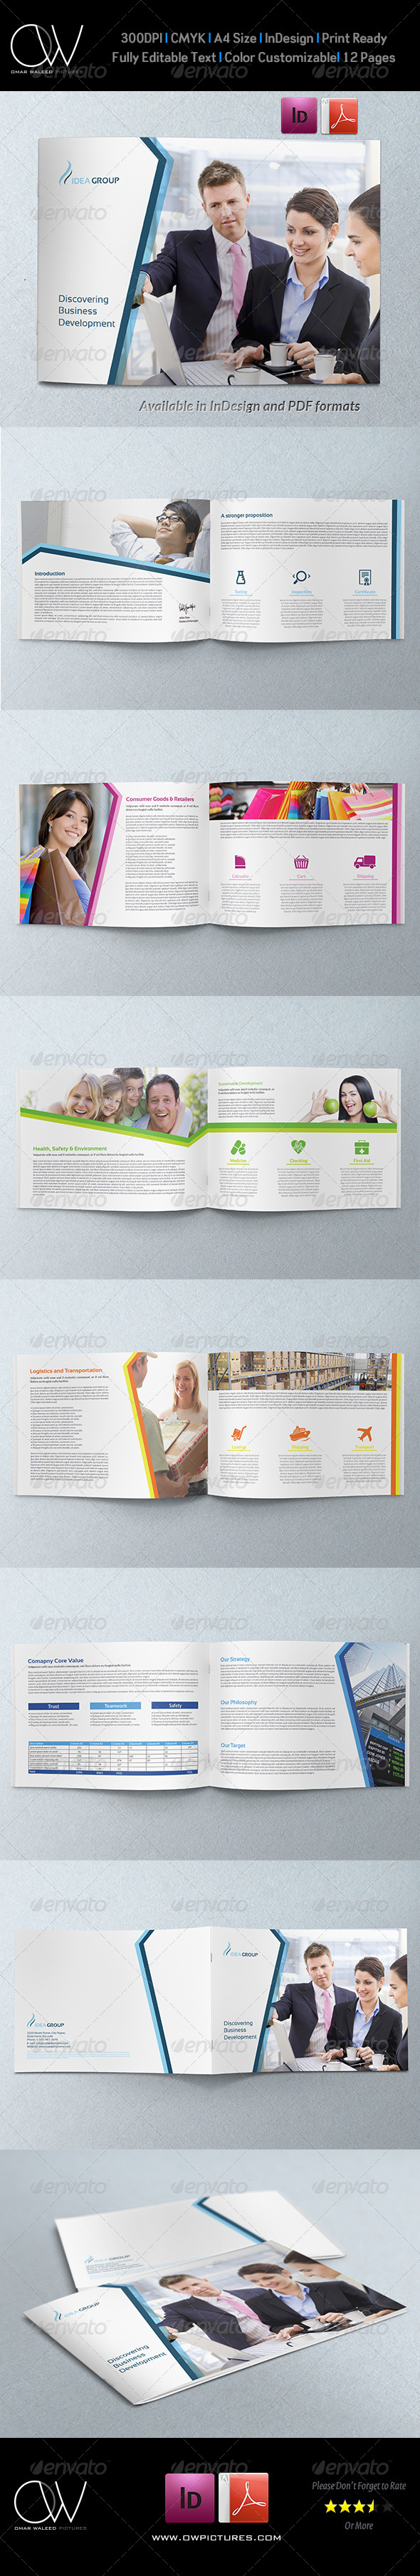 GraphicRiver Corporate Brochure Template Vol.35 12 Pages 7493677